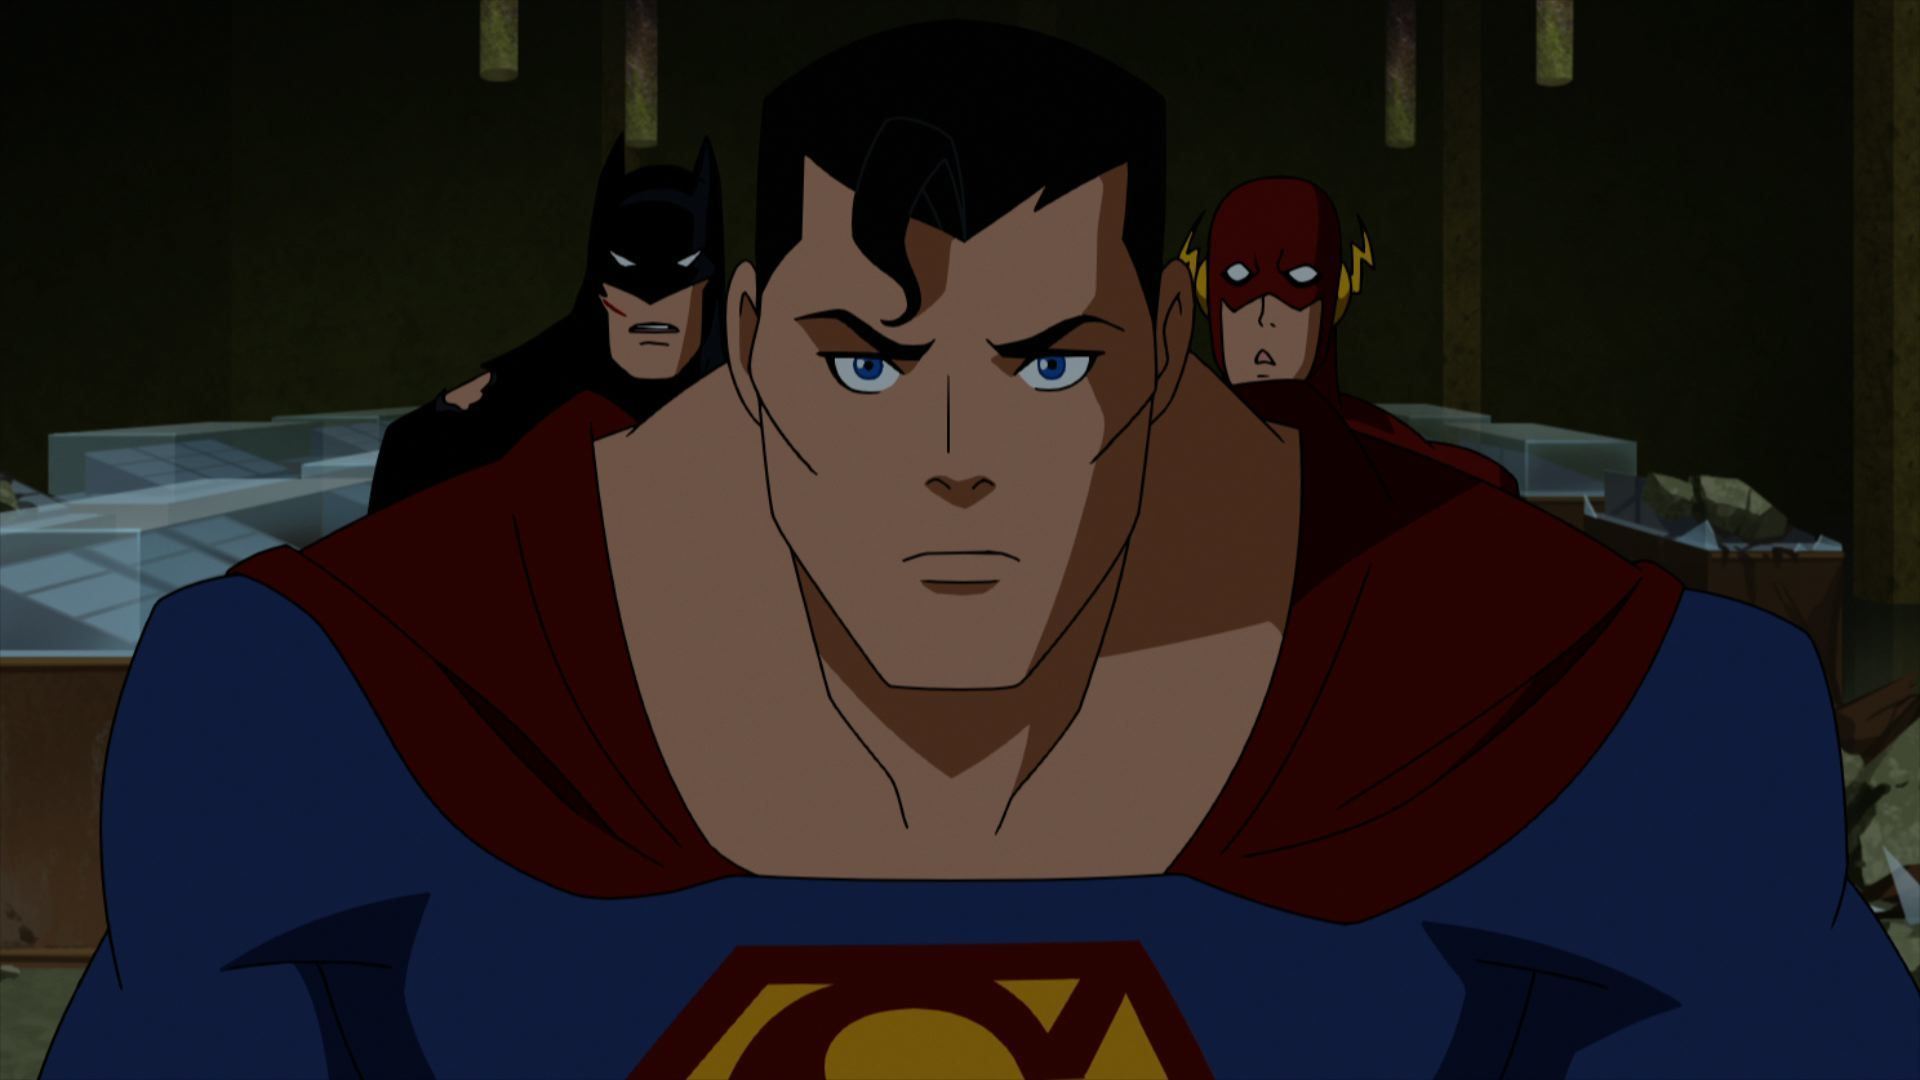 justice league: doom movie images and voice cast   collider